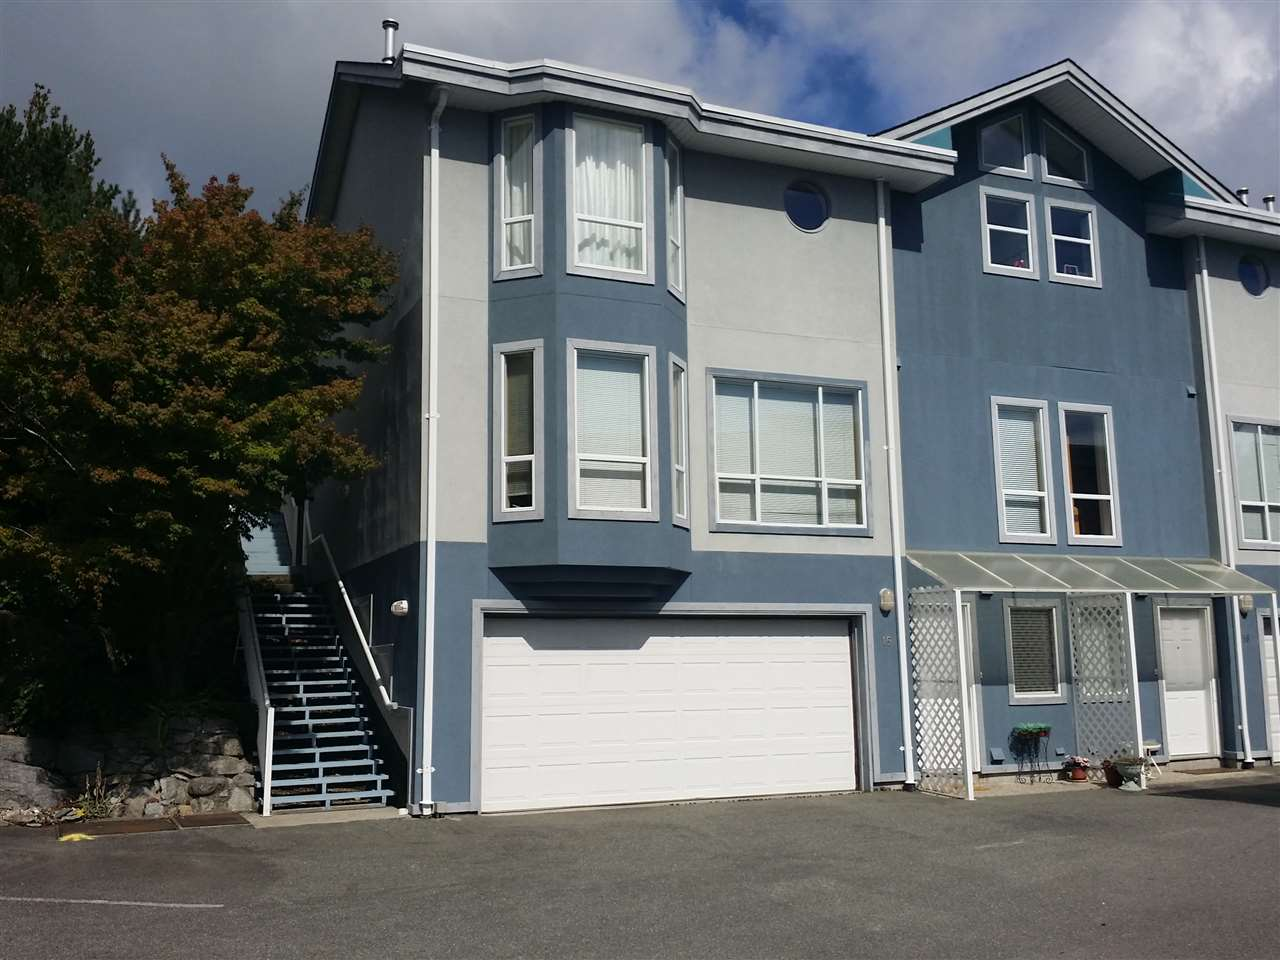 "Main Photo: 15 5740 MARINE Way in Sechelt: Sechelt District Townhouse for sale in ""MARINE VIEW ESTATES"" (Sunshine Coast)  : MLS® # R2105852"